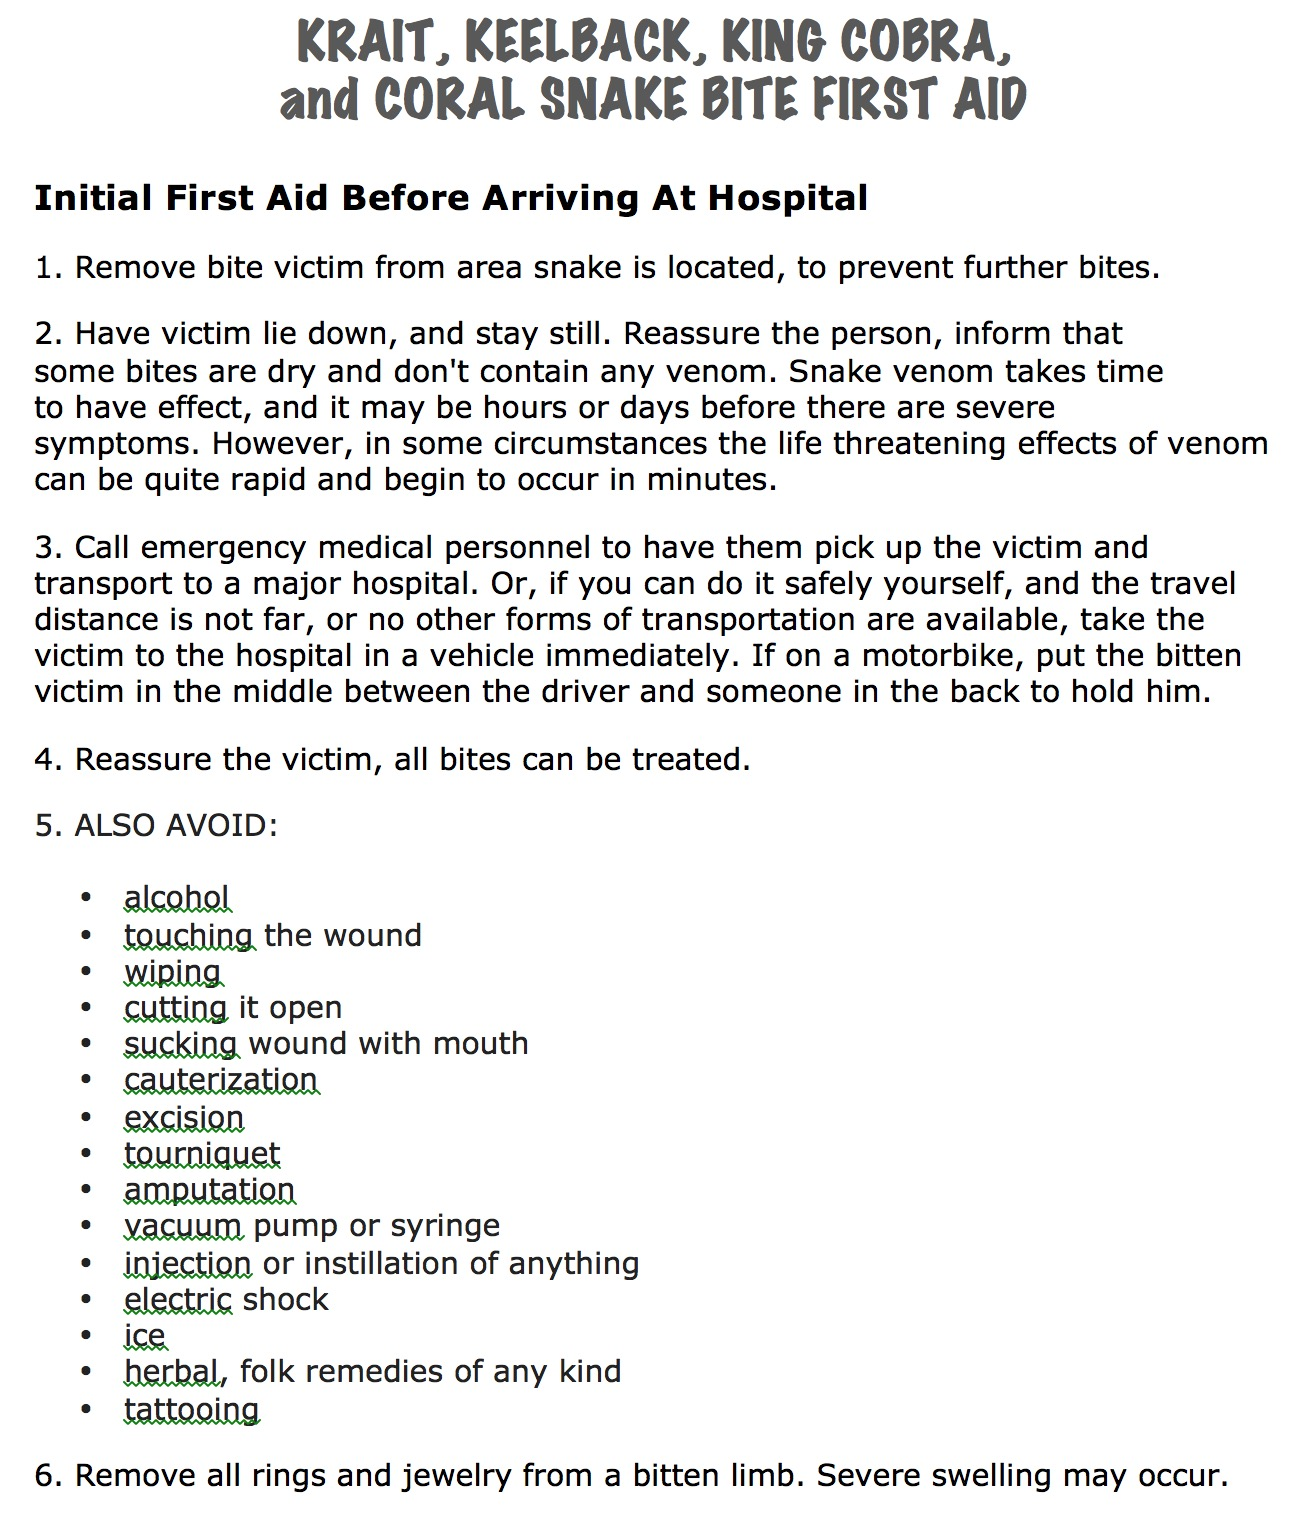 Crucial First Aid Instructions For King Cobra, Krait